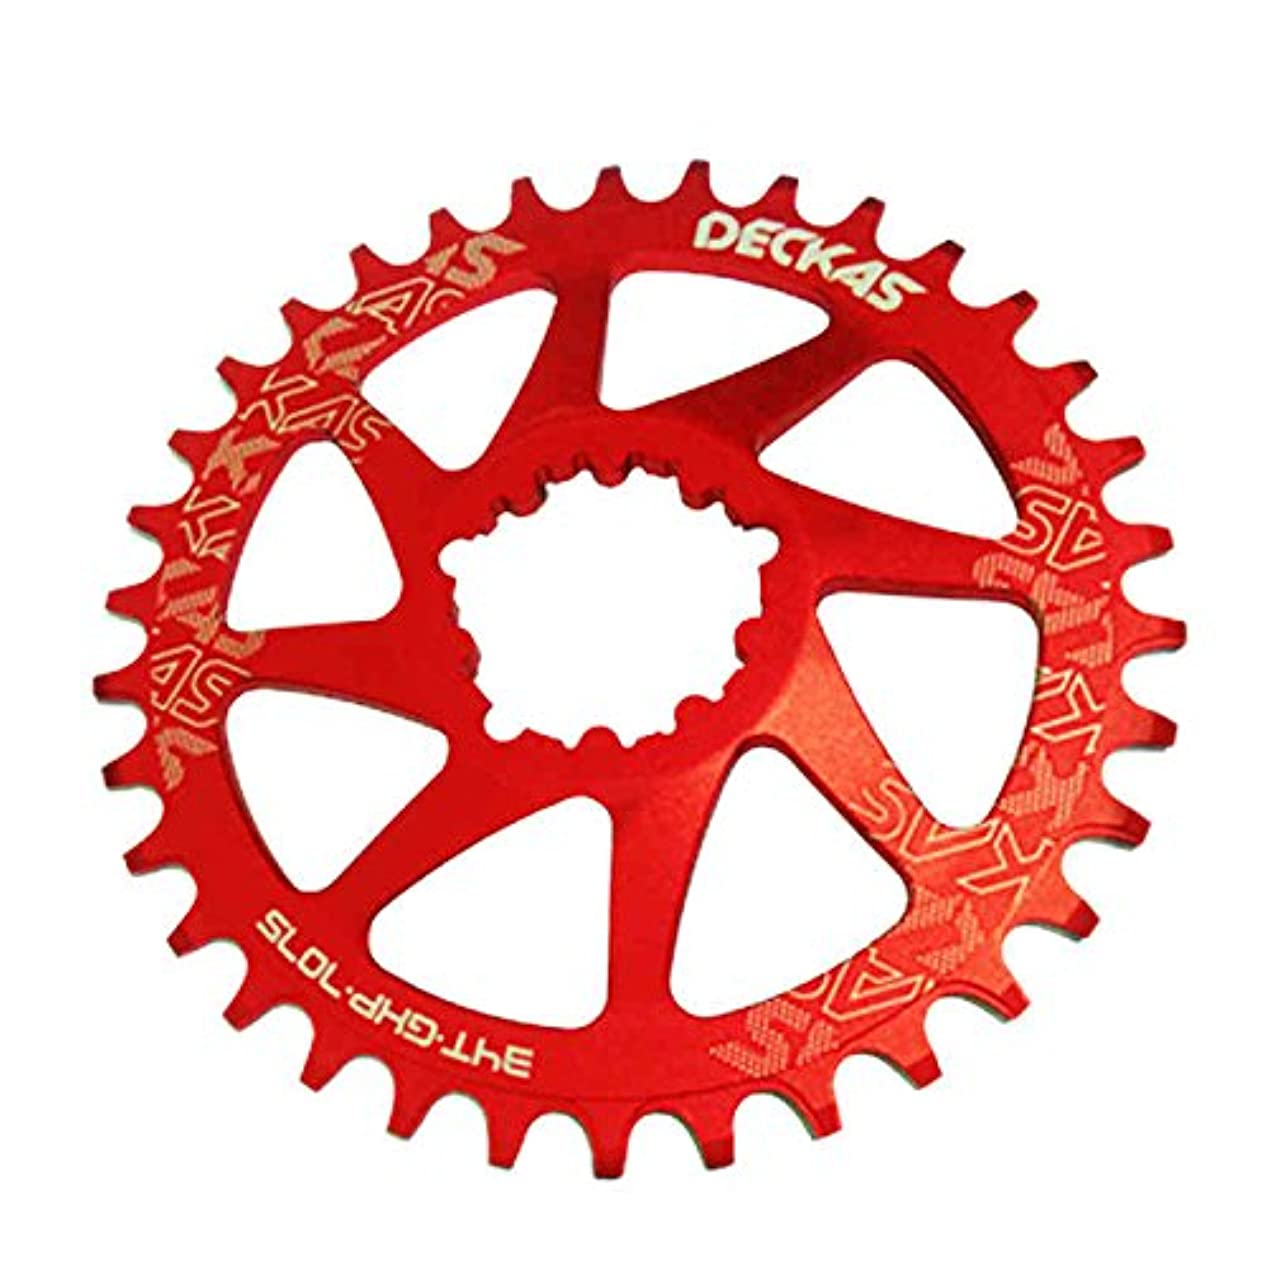 商標経営者ダースPropenary - GXP bicycle crankset Al 7075 CNC32T 34T Narrow Wide Chainring Chainwheel for Sram XX1 XO1 X1 GX XO X9 crankset bicycle parts [ 32T Red ]